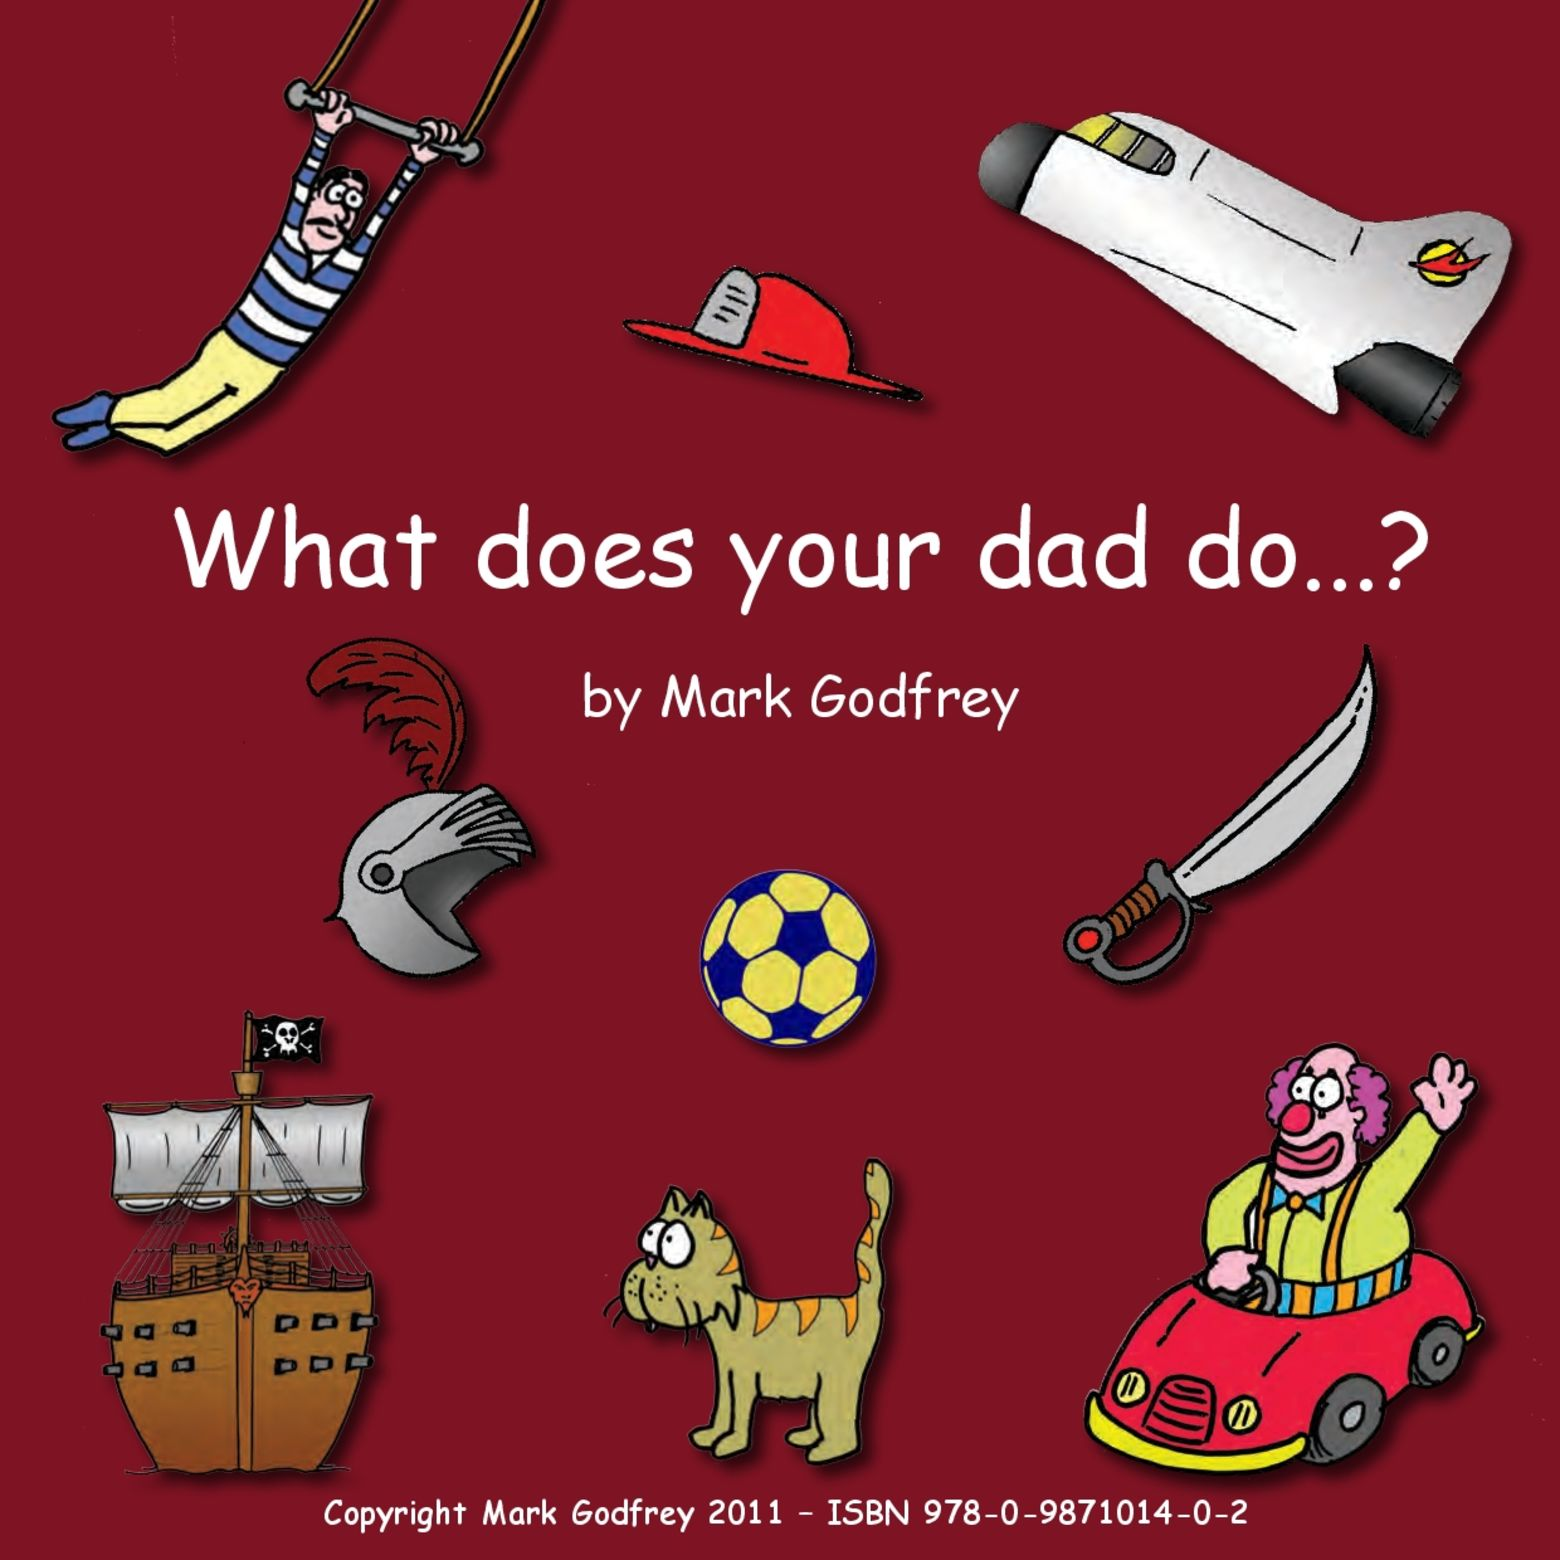 Reading What does your dad do? by Mark Godfrey | MagicBlox